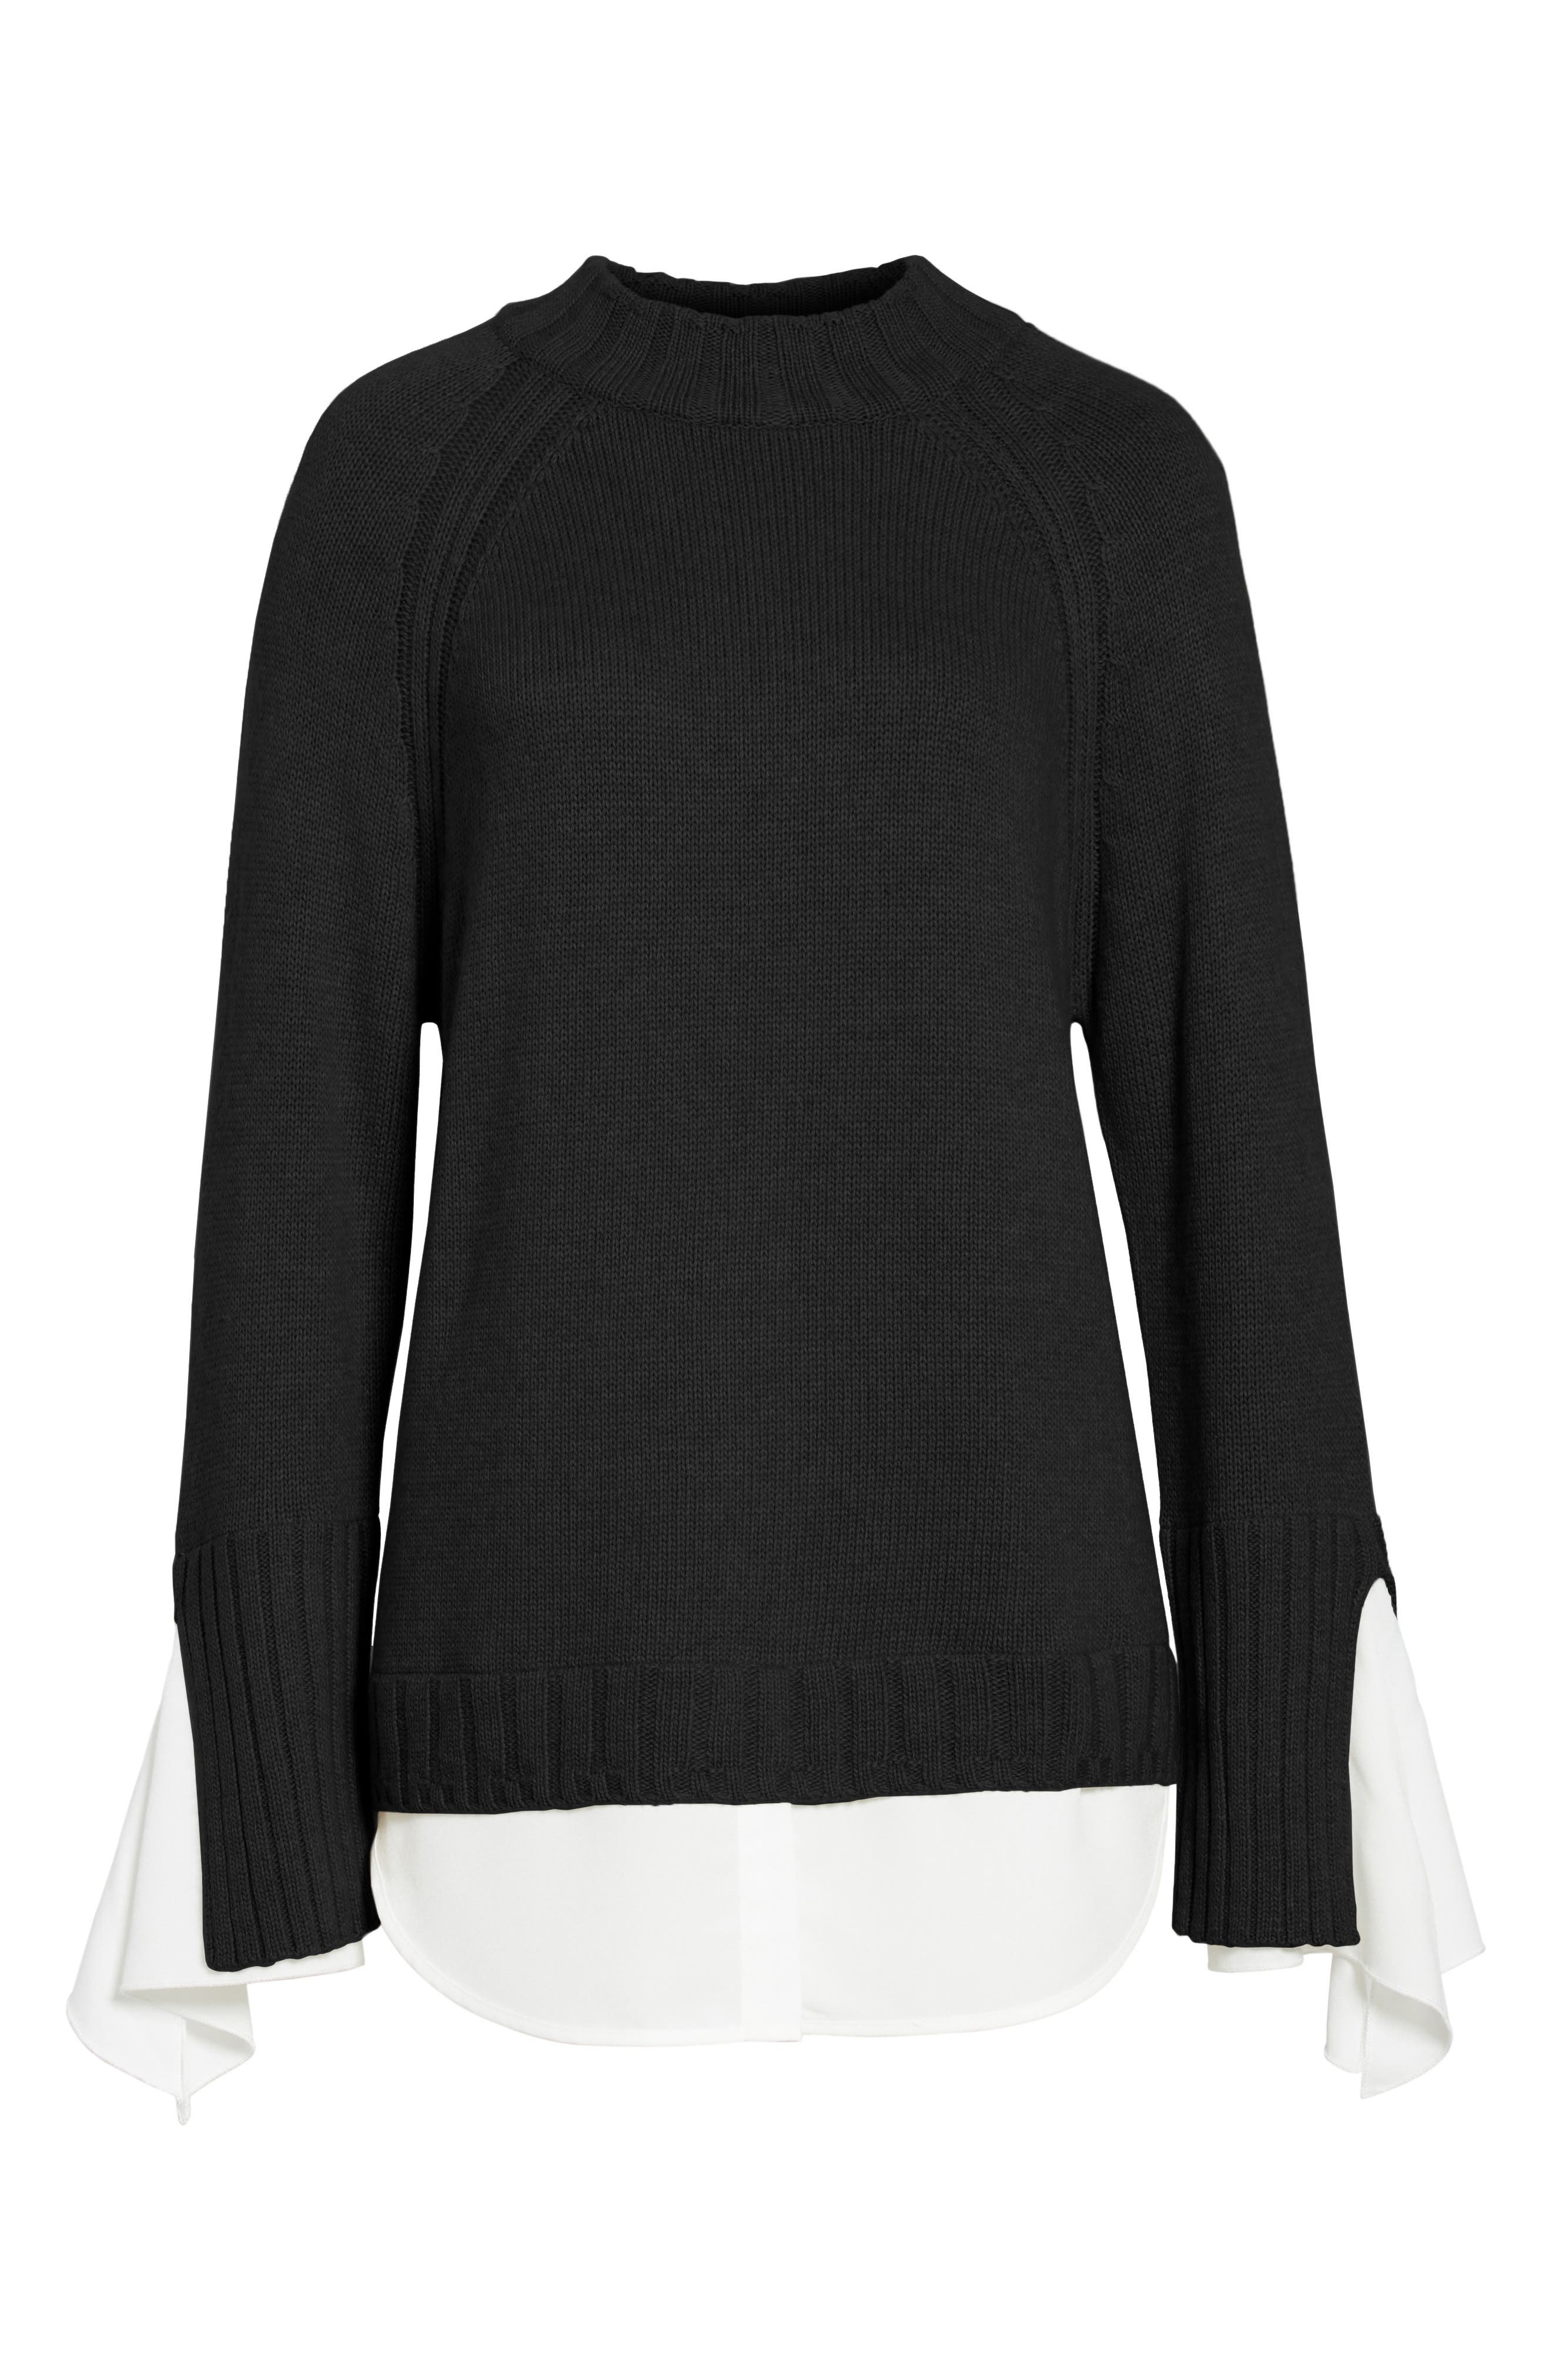 Remi Layered Pullover,                             Alternate thumbnail 6, color,                             002